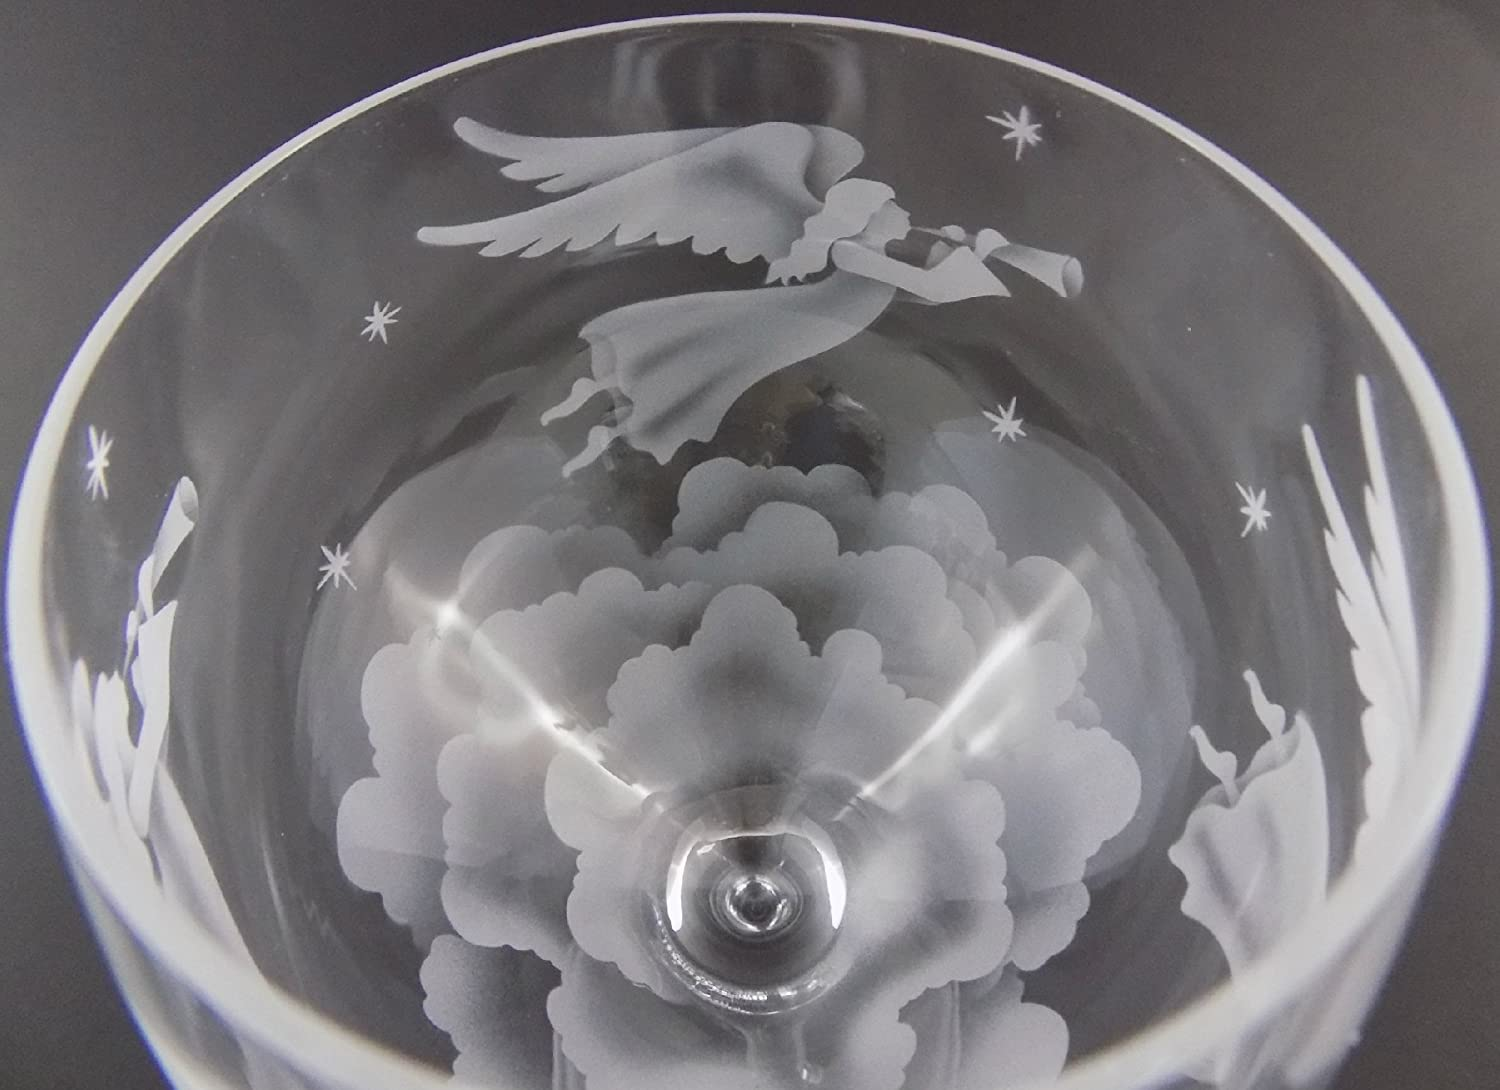 IncisoArt Hand Etched Italian Crystal Goblet Sandblasted (Sand Carved) Handmade Wine Water Glass Engraved (Angel Gabriel's Horn, 340 Milliliter (11.5 Ounce) White Wine)